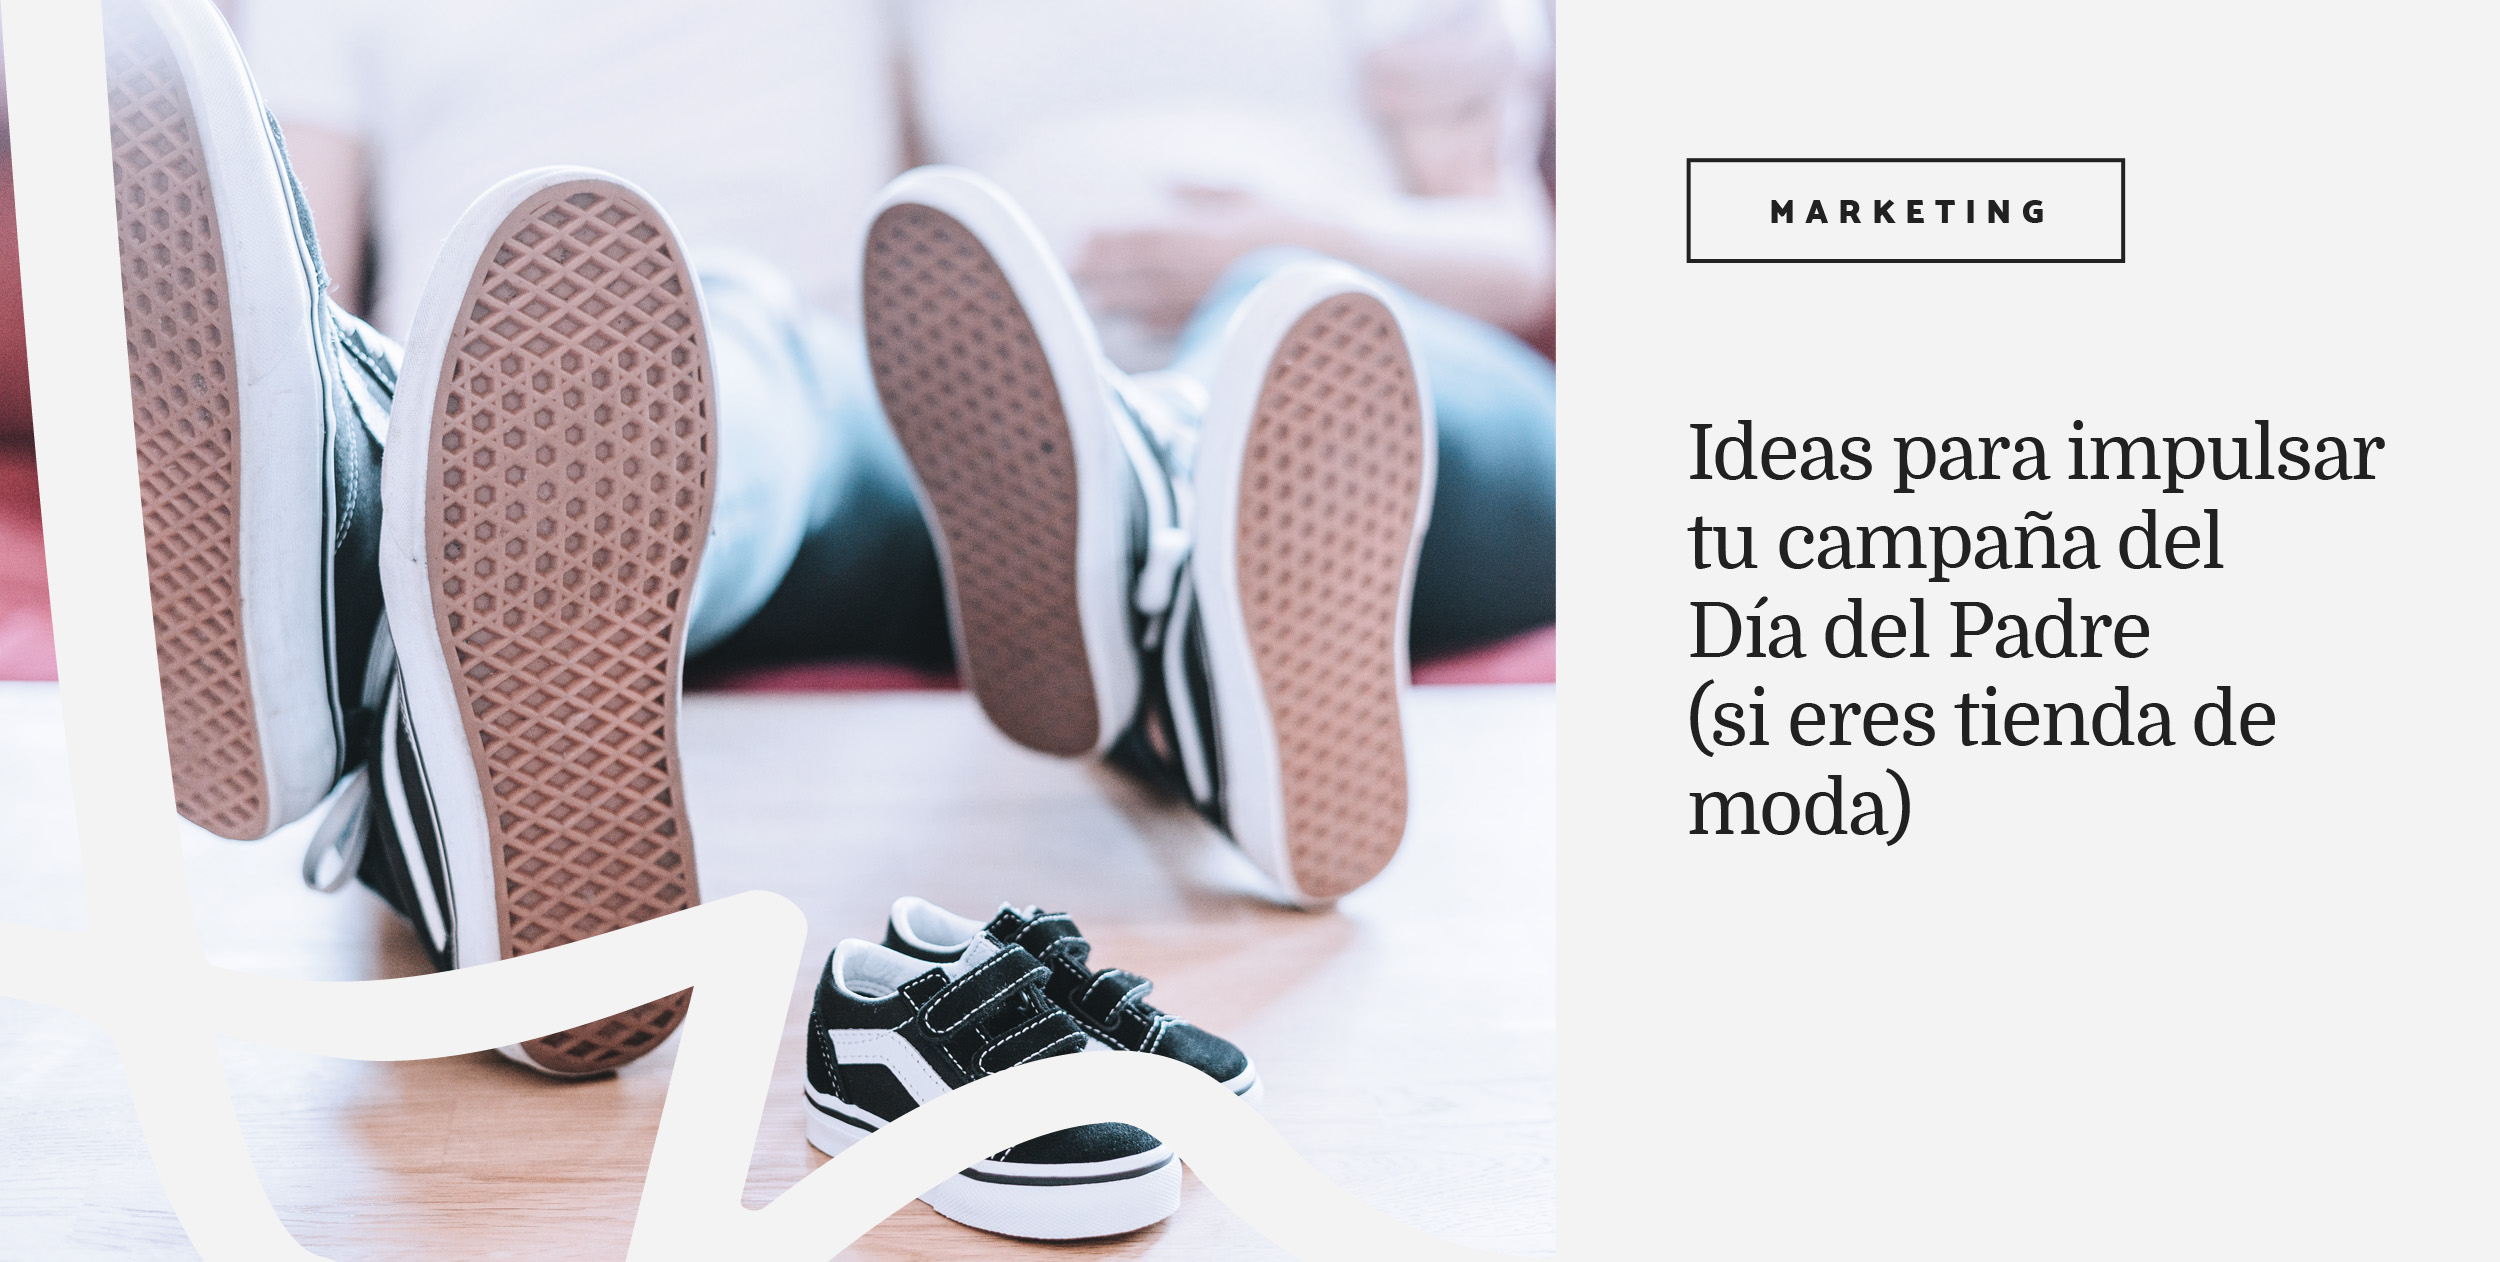 ideas-de-Marketing-Dia-del-padre-ecommerce-moda-Ana-Diaz-del-Rio-consultora.jpg